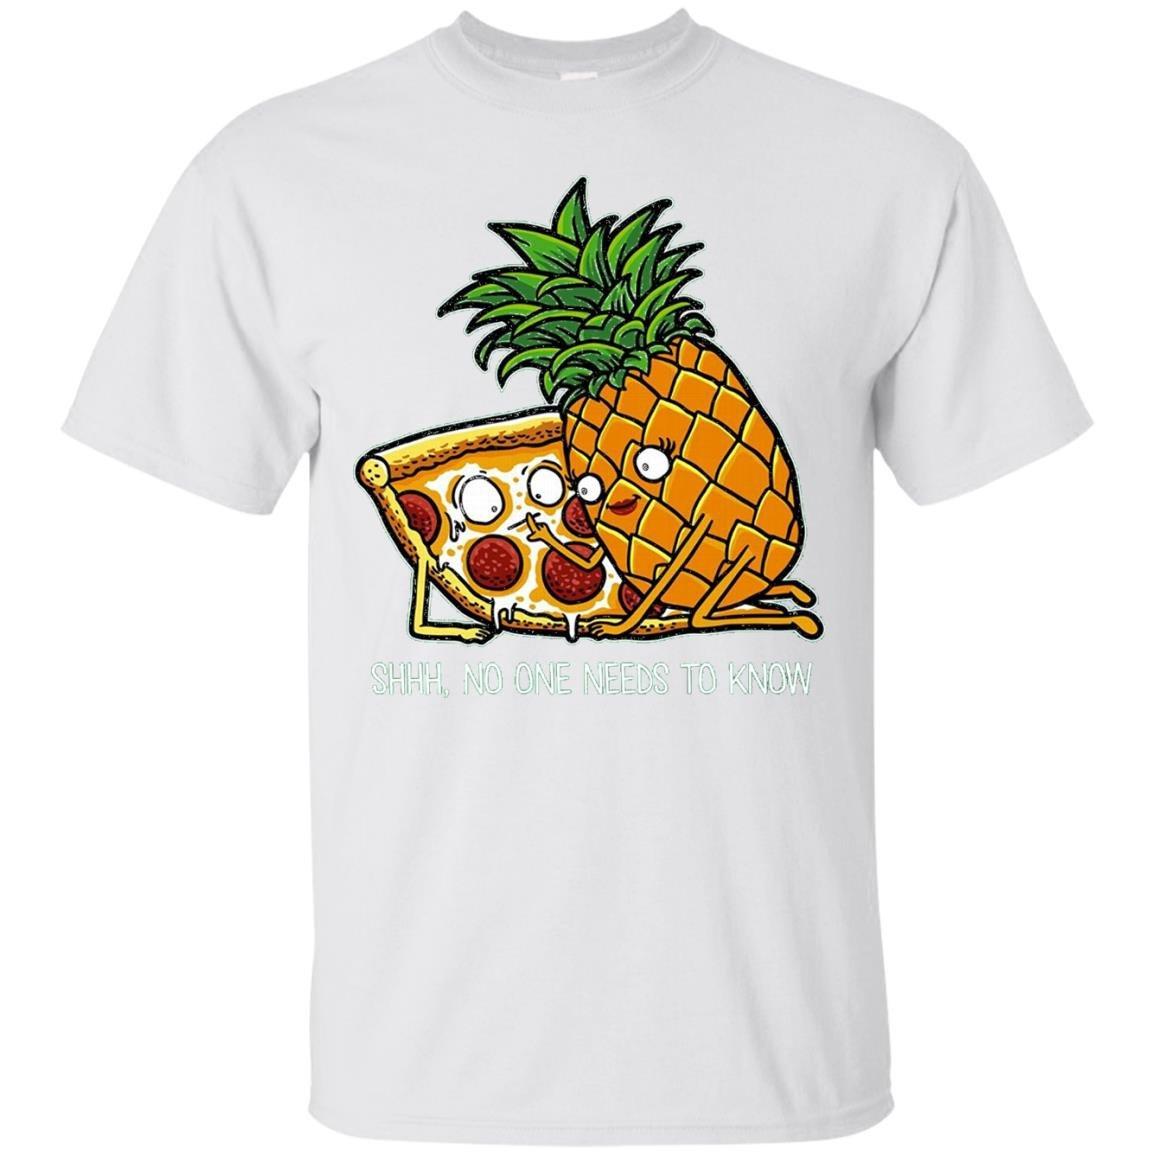 Pineapple Pizza Shirt - Funny Pepperoni Pizzas TShirts - T-Shirt